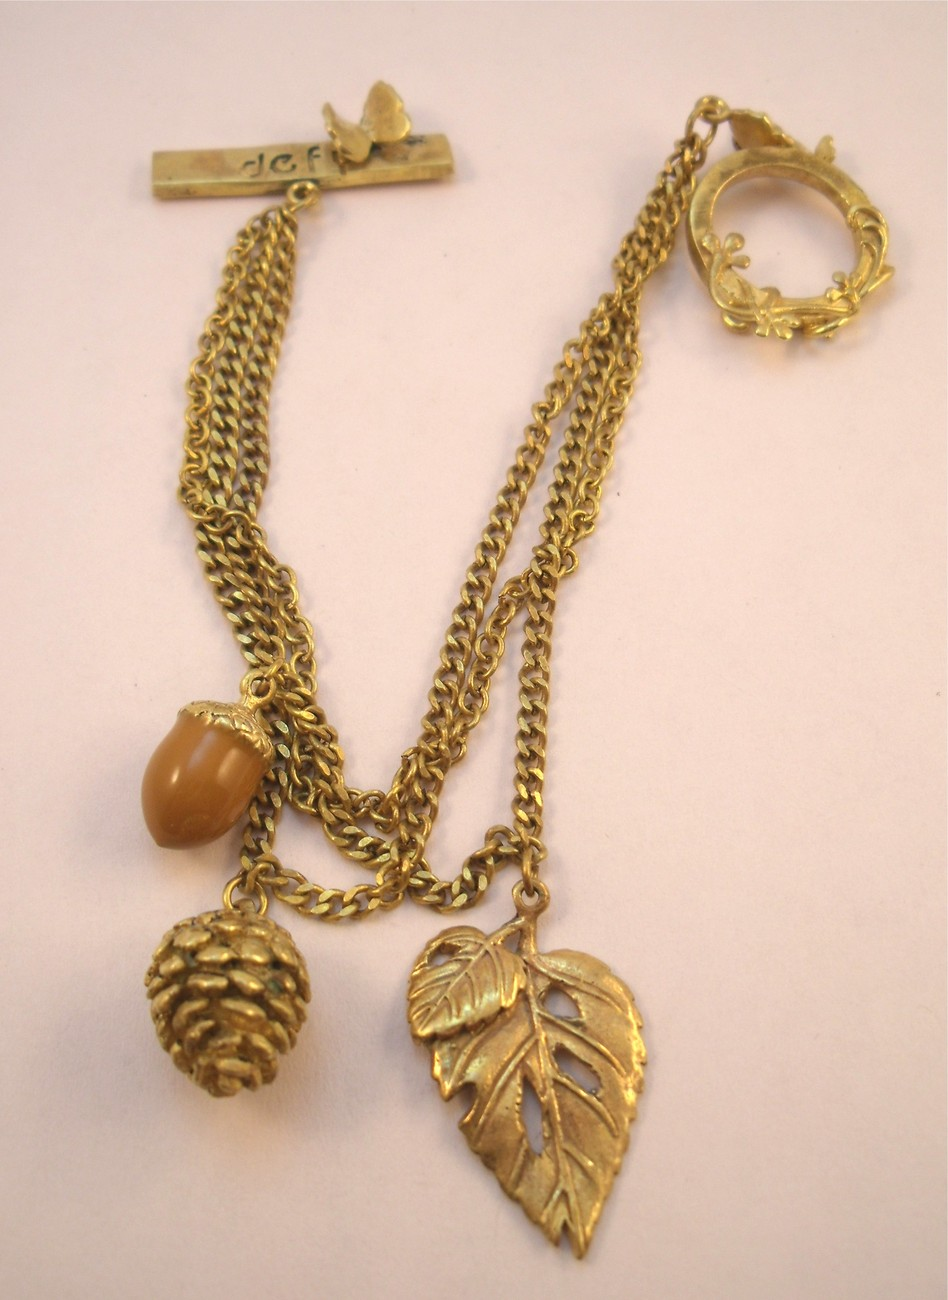 Defy toggle bracelet with acorn, pine cone, leaf and butterflies